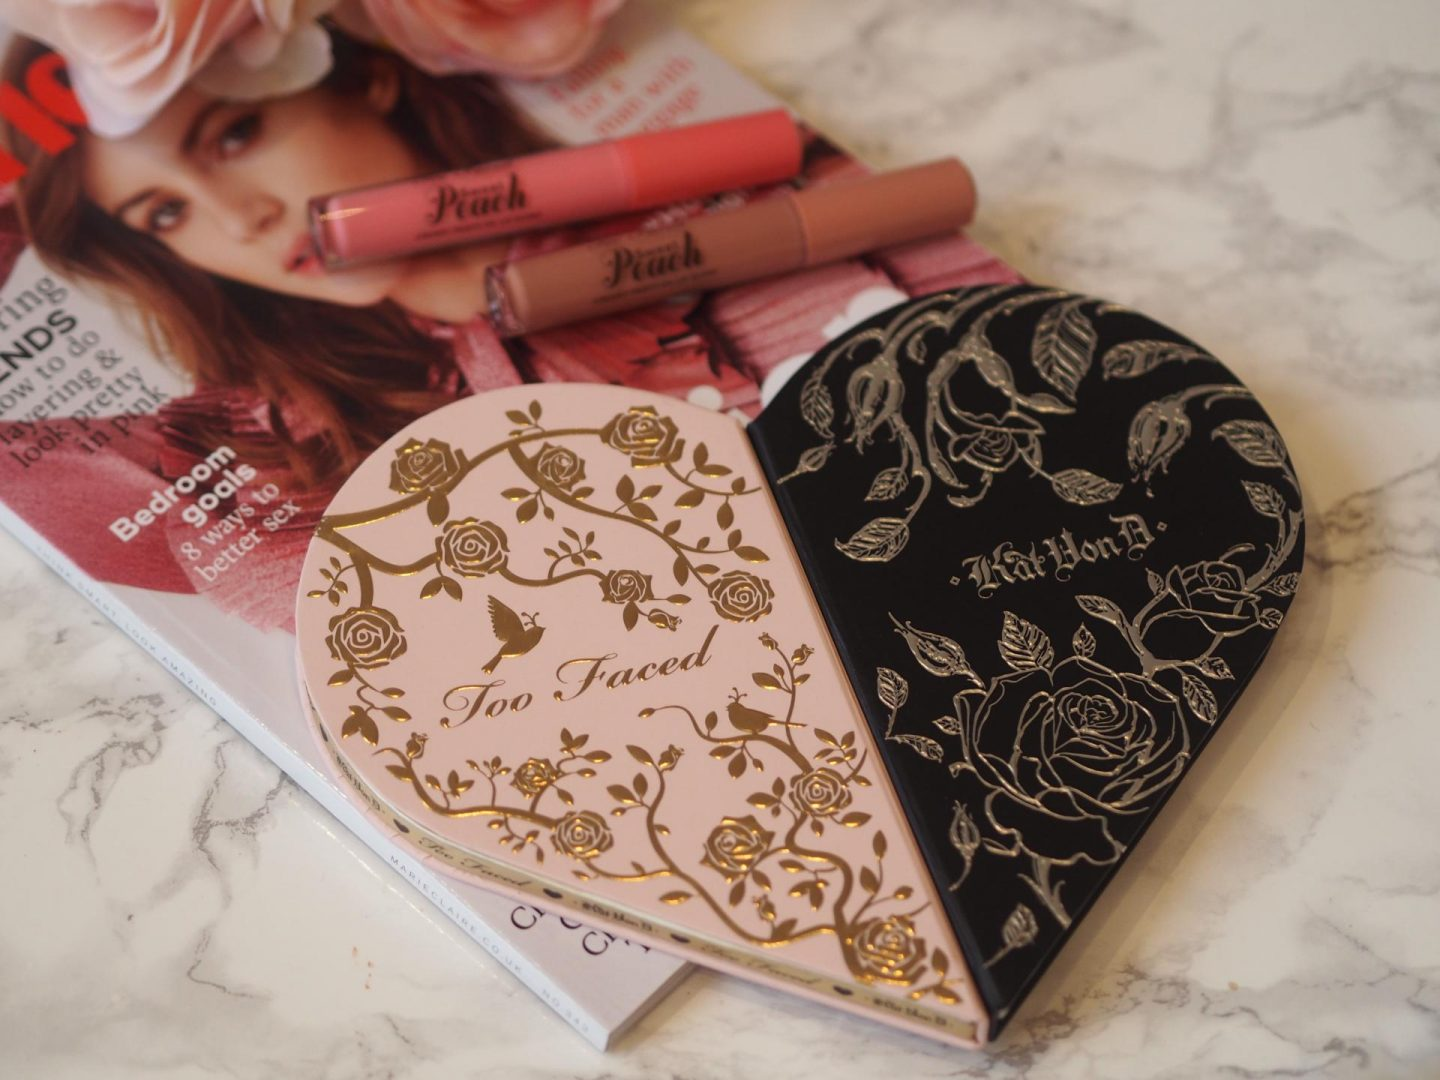 Around The World Beauty - Product: Too Faced x Kat Von D Better Together Eyeshadow Palette